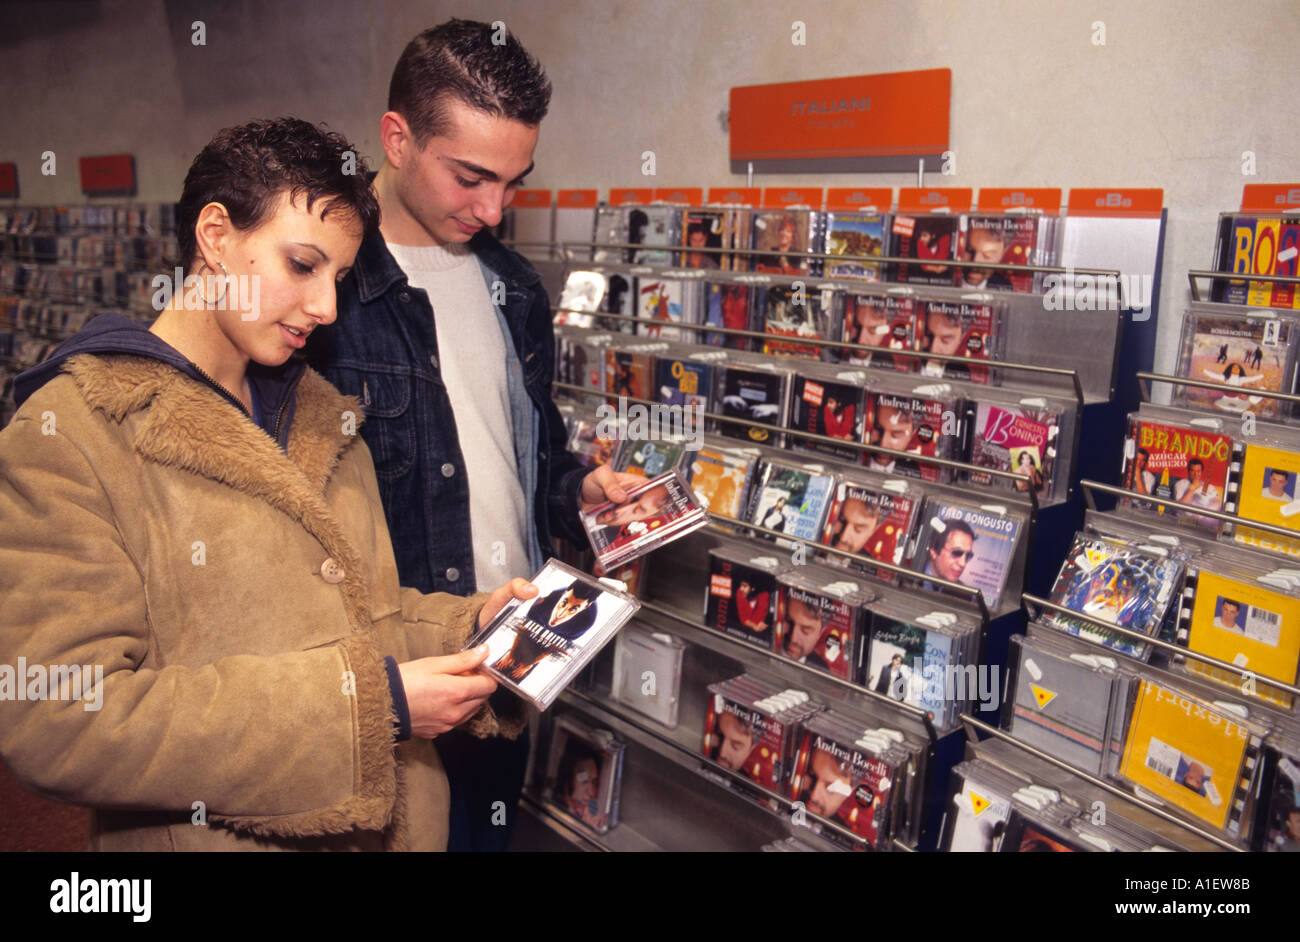 Young people shopping for CD s in an Italian music store  - Stock Image